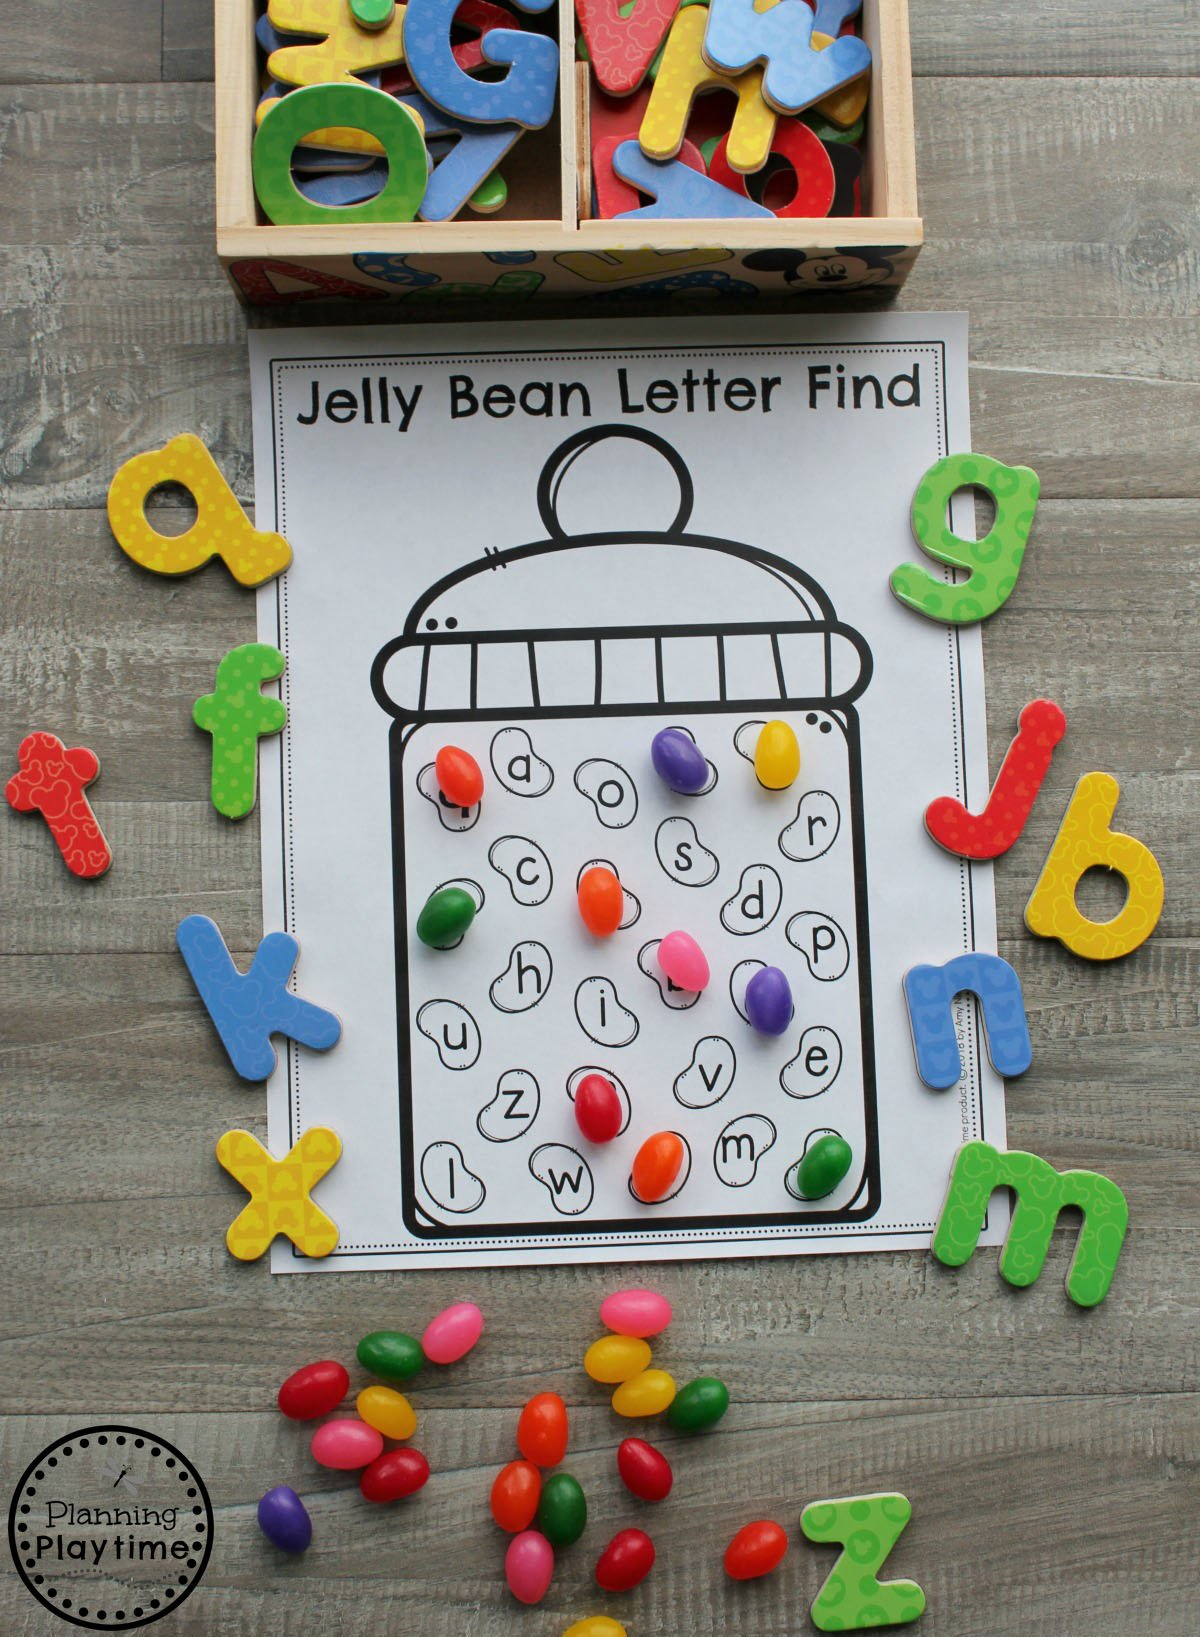 Easter Letter Find Activity for Preschool #easter #preschool #easteractivities #easterpreschool #planningplaytime #letterworksheets #alphabetworksheets